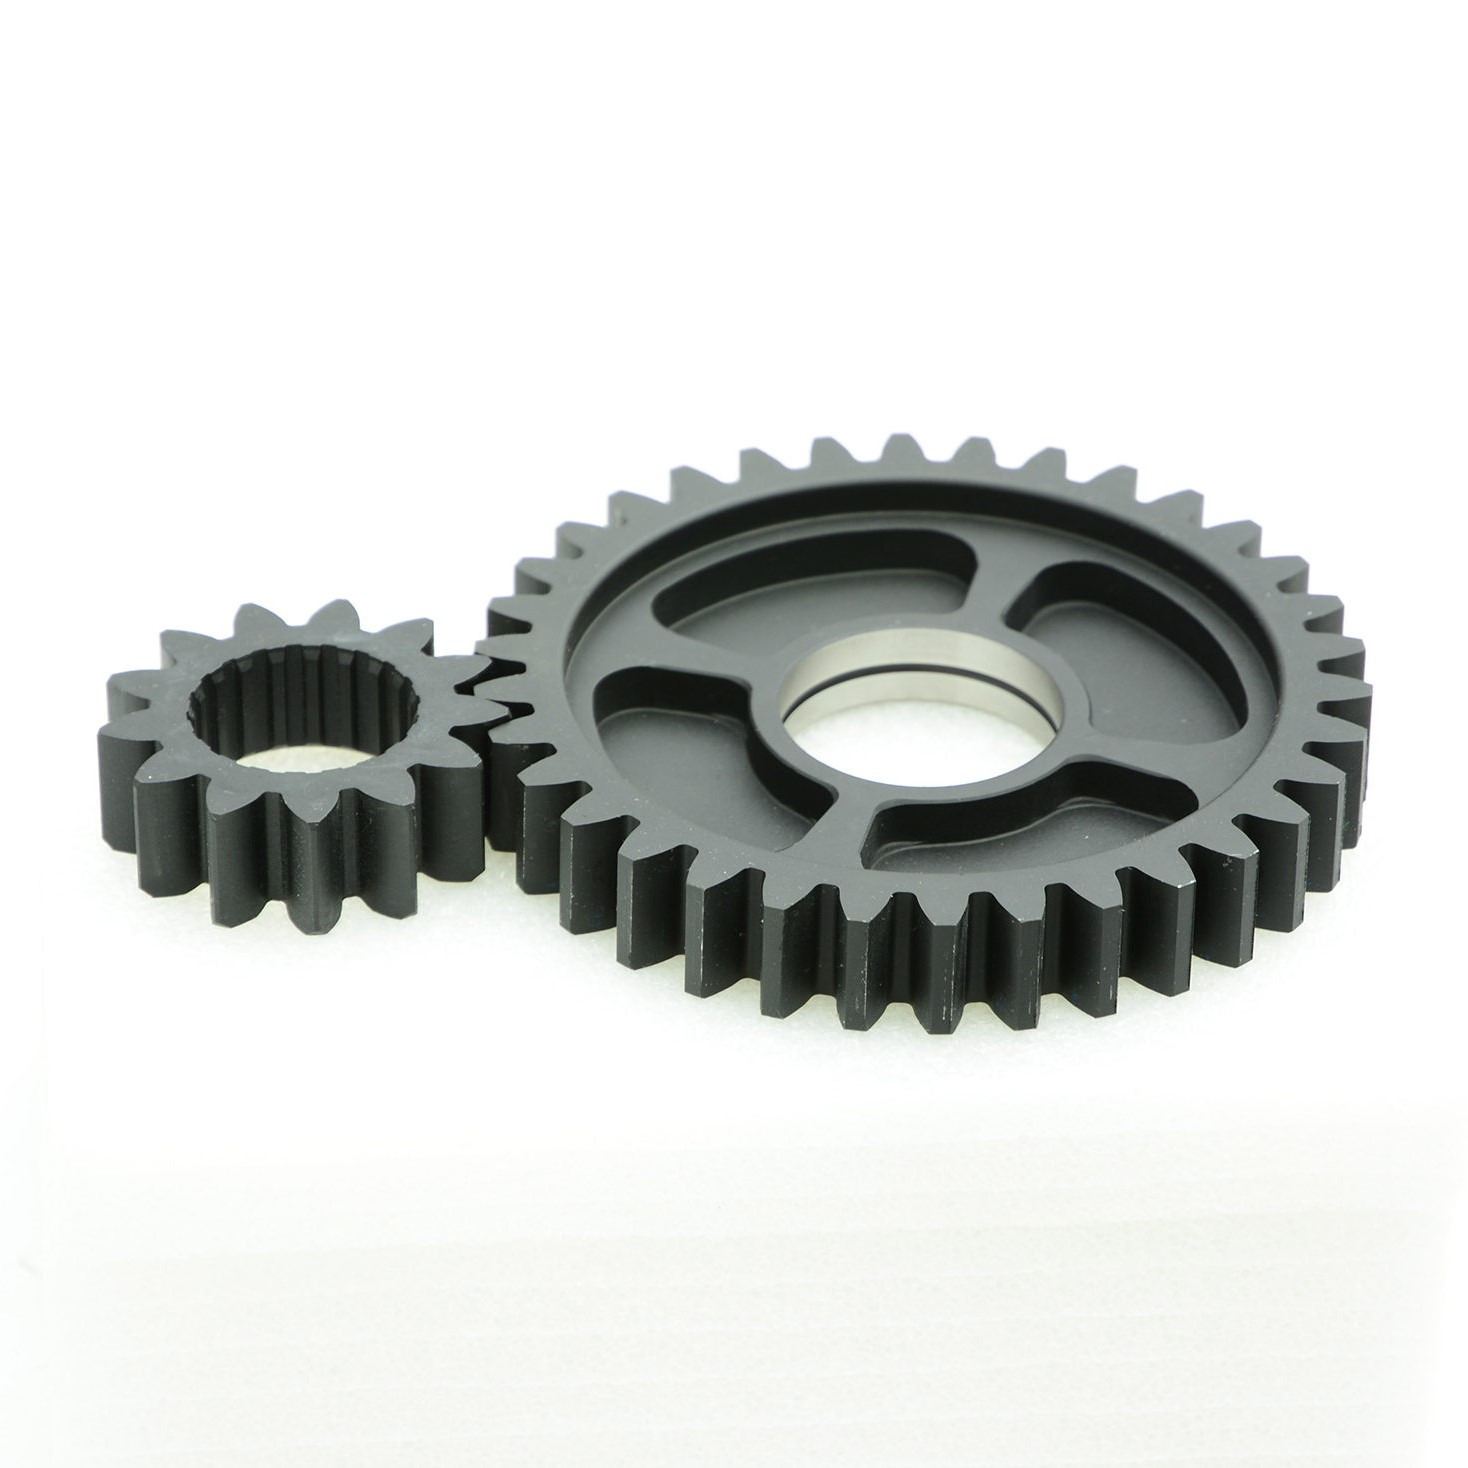 Yamaha YXZ1000R Drop in Replacement First Gear Set by Tubeworks - 17/42